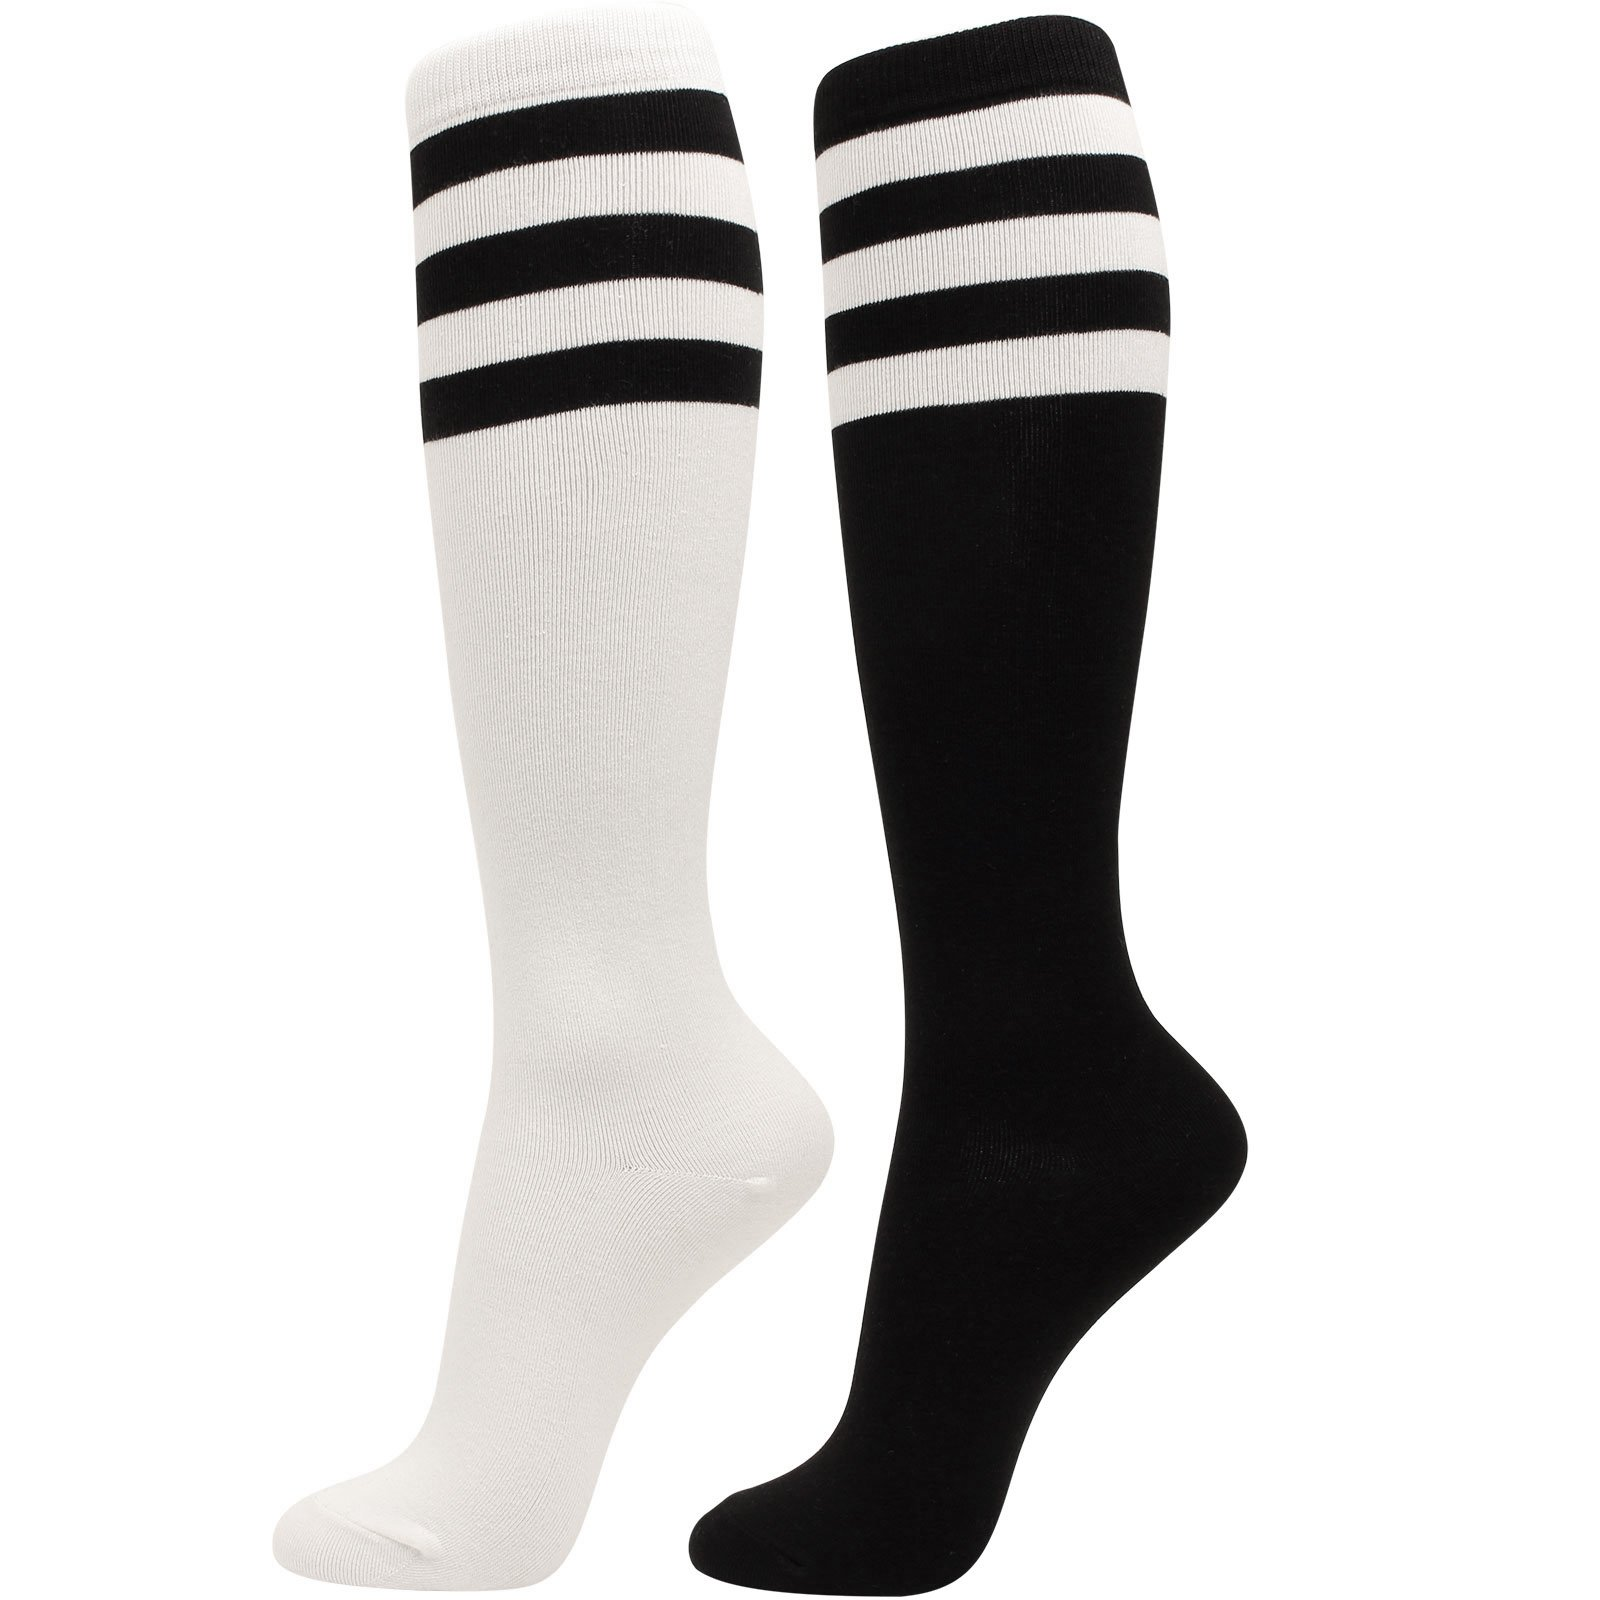 WOWFOOT Girl Knee High Socks Soft Cotton Colorful Pattern Design For Women Summer or Winter ,R-triple Stripes 2pair(black,white),One Size